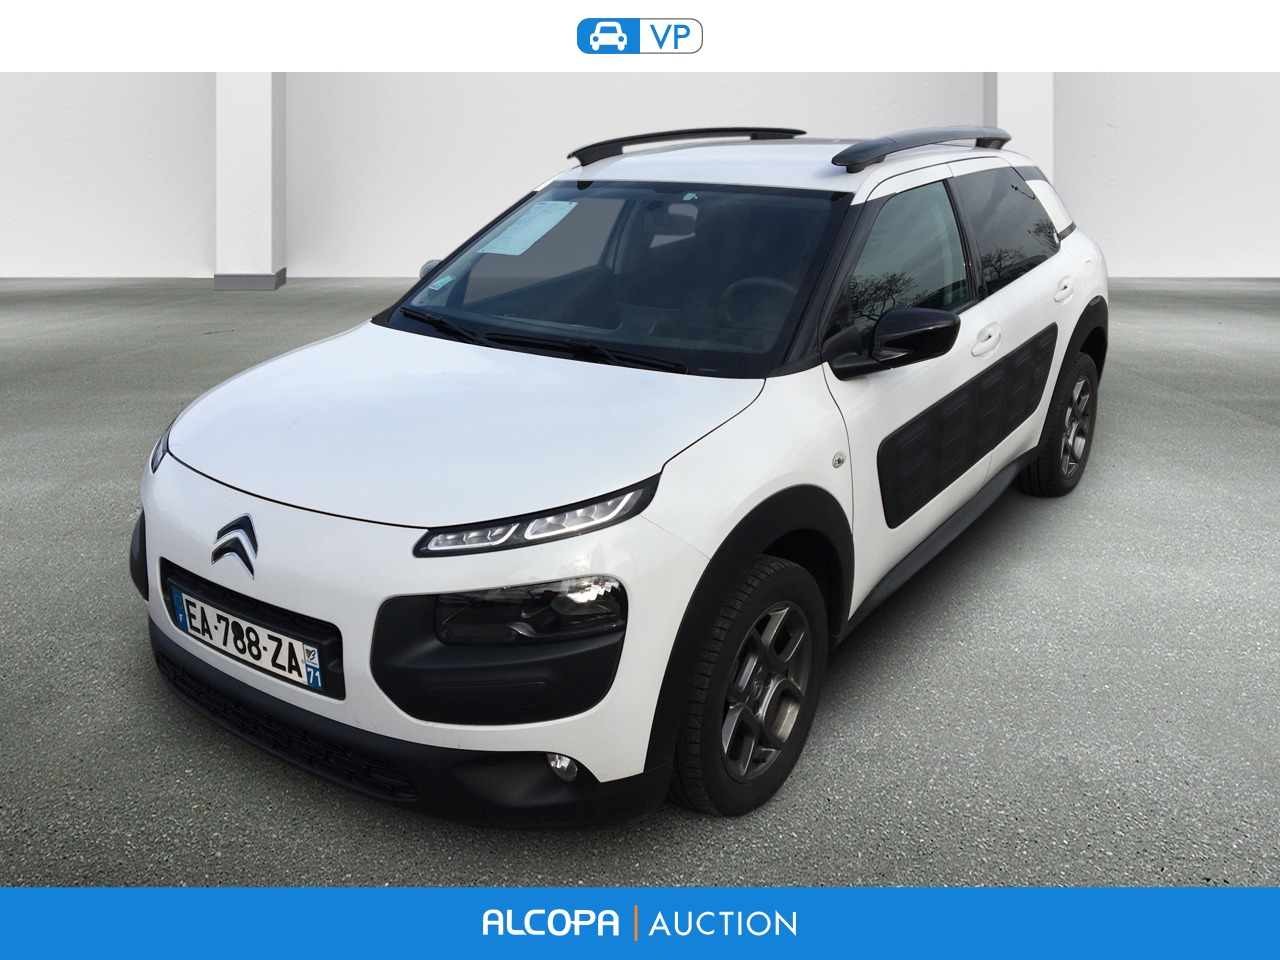 citroen c4 cactus 03 2014 12 2017 c4 cactus puretech 82 feel edition alcopa auction. Black Bedroom Furniture Sets. Home Design Ideas